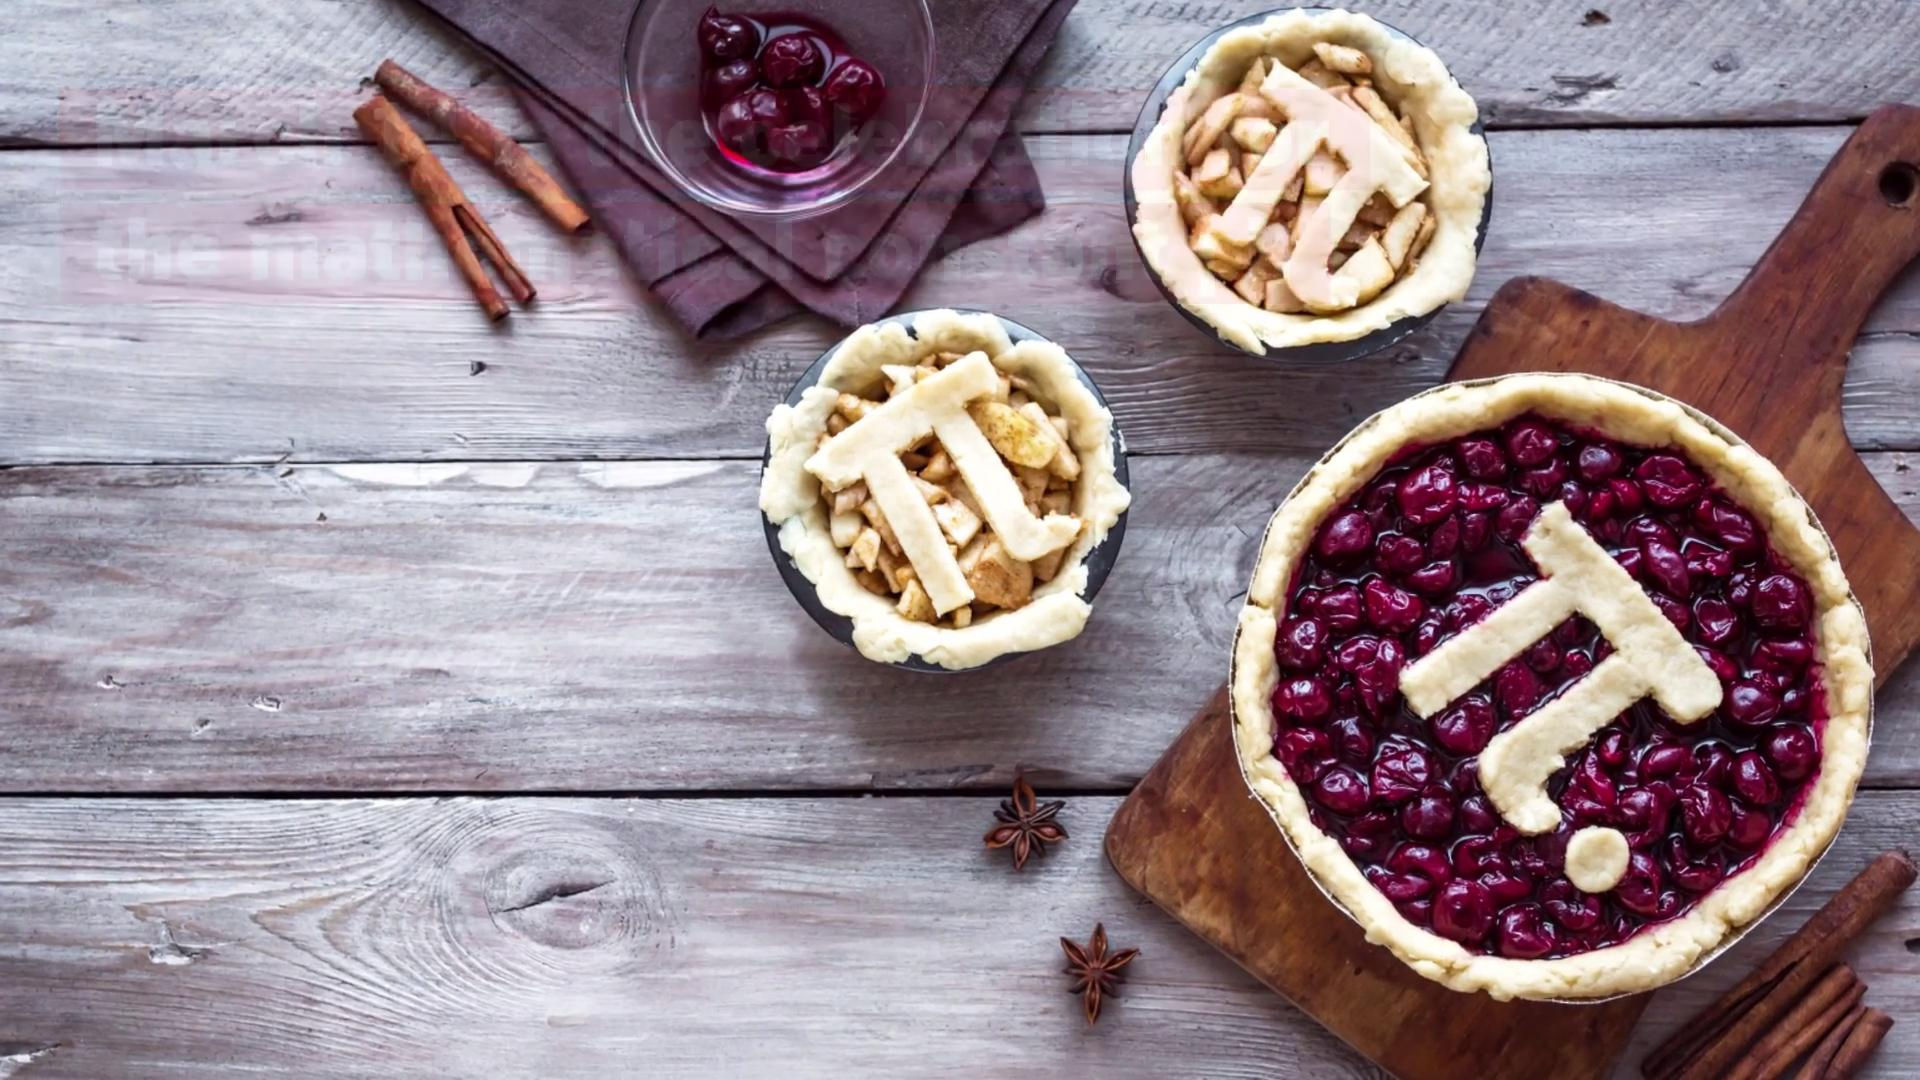 Delicious Pies for Pi Day